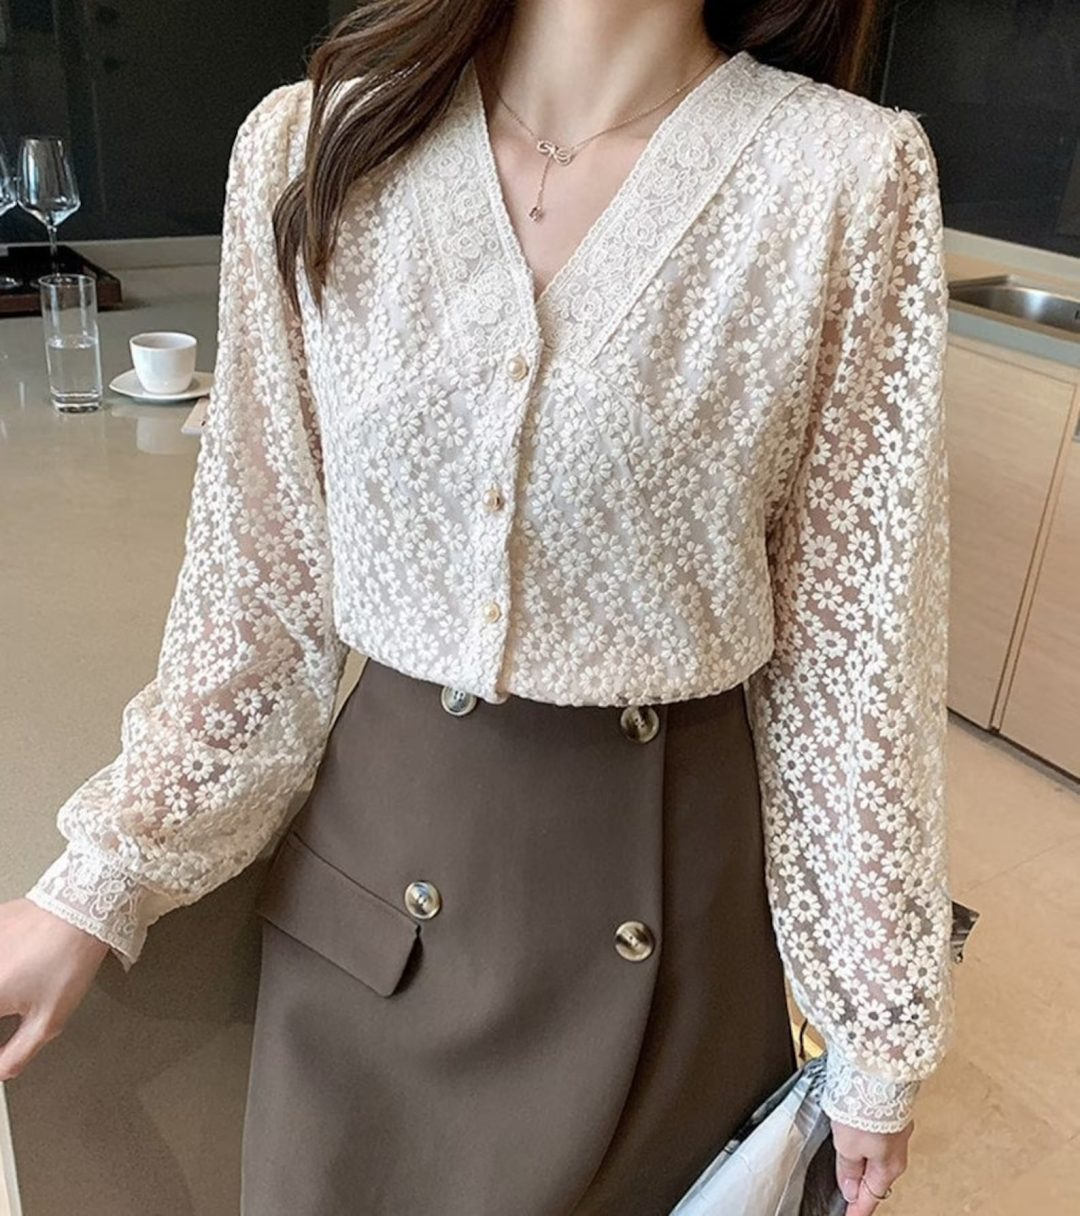 Light Academia Outfits: Floral lace blouse